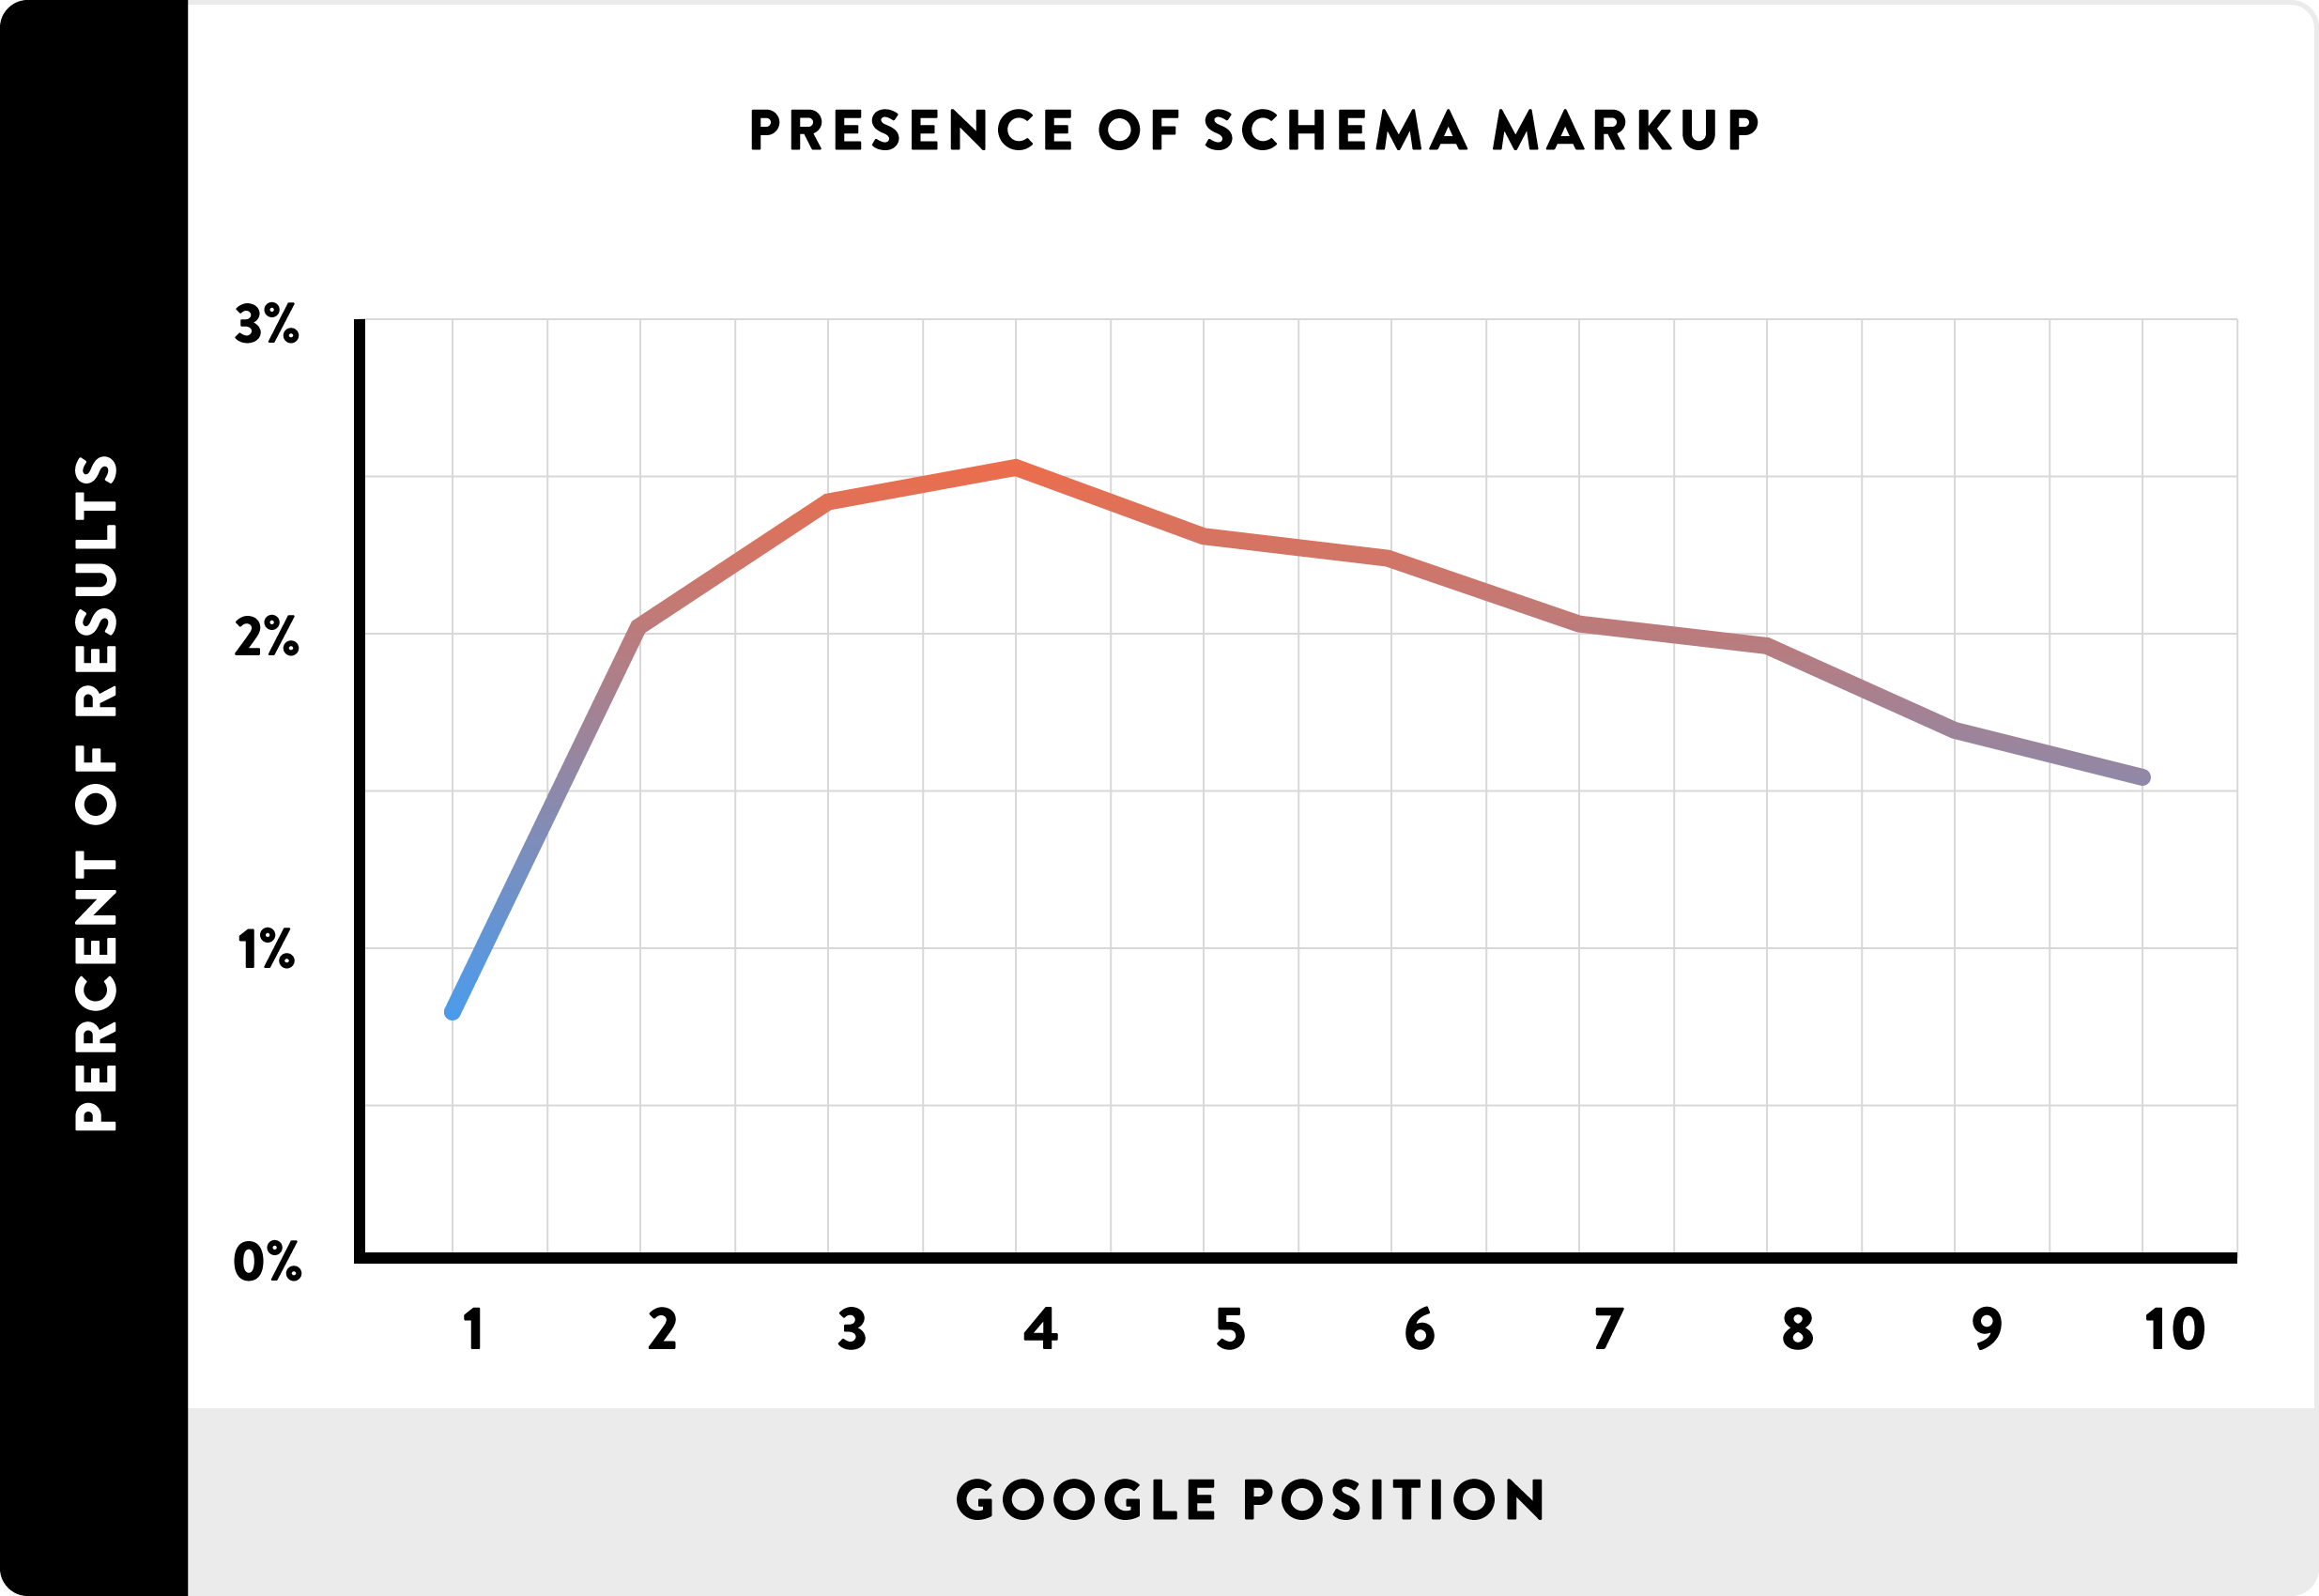 Schema use not correlated with rankings